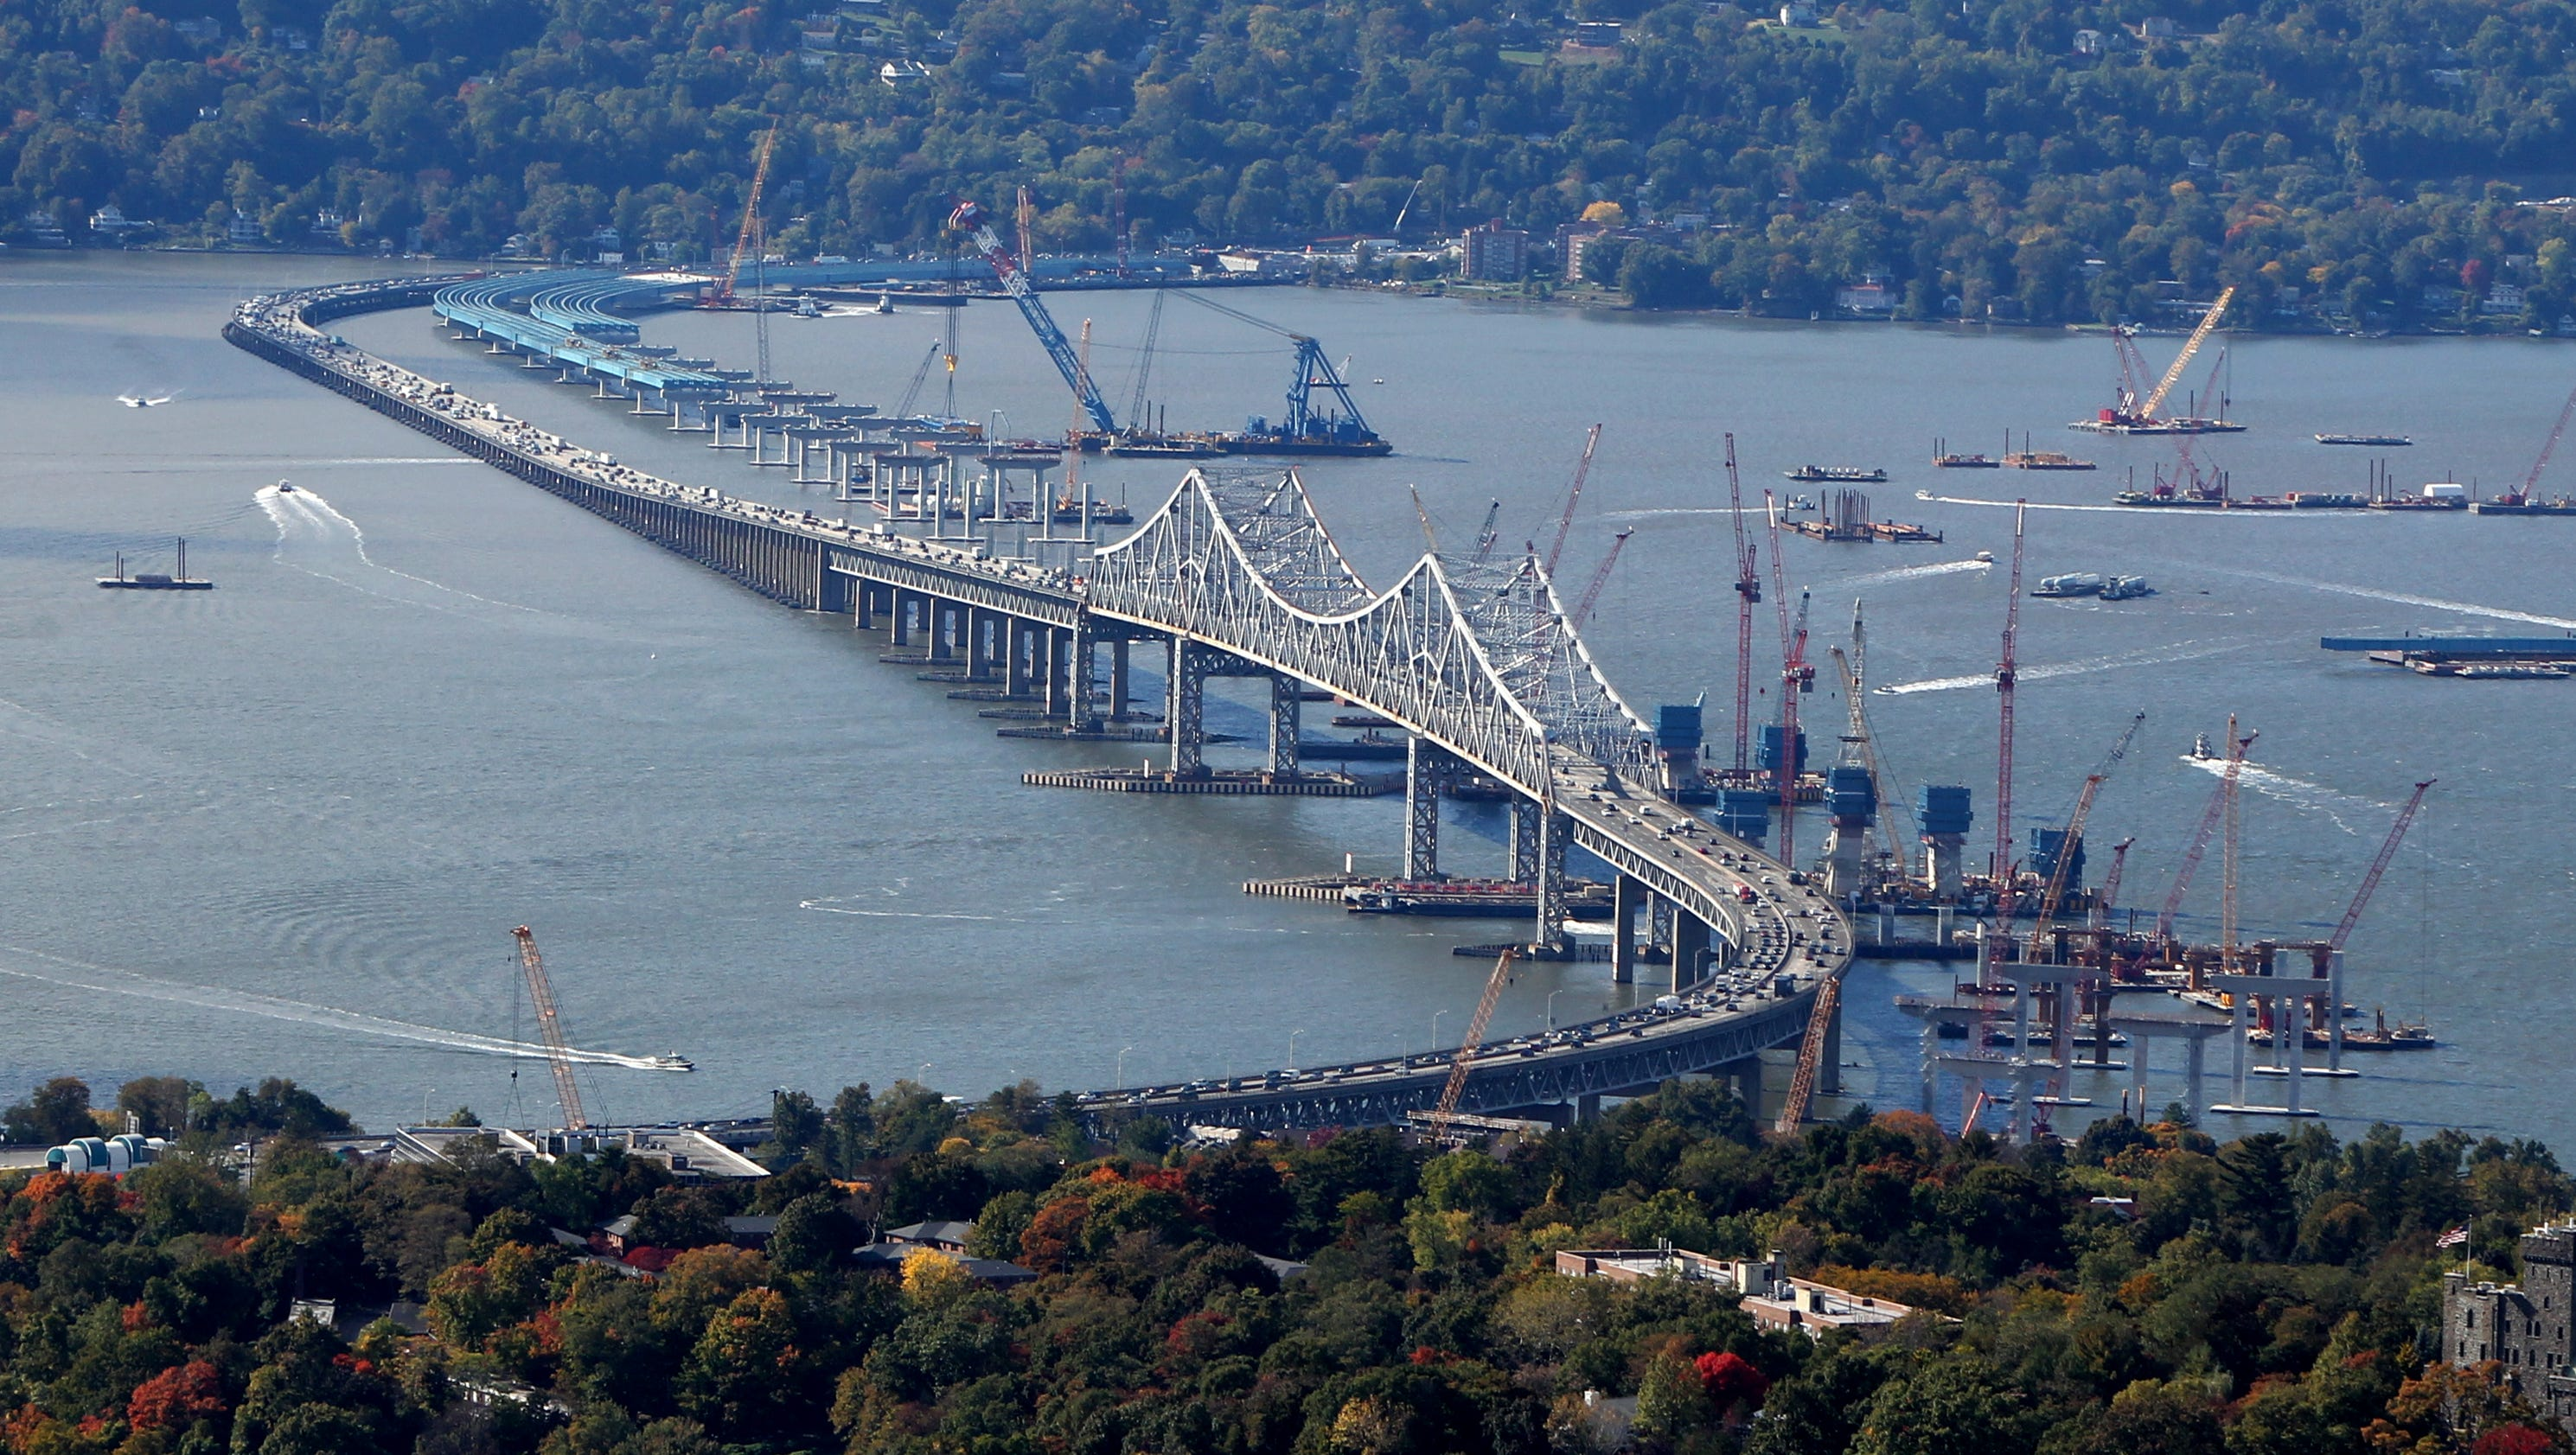 tappan zee bridge essay Hall of fame essays hours & directions take the last exit before the tappan zee bridge take the first exit after the tappan zee toll booths to route 9.